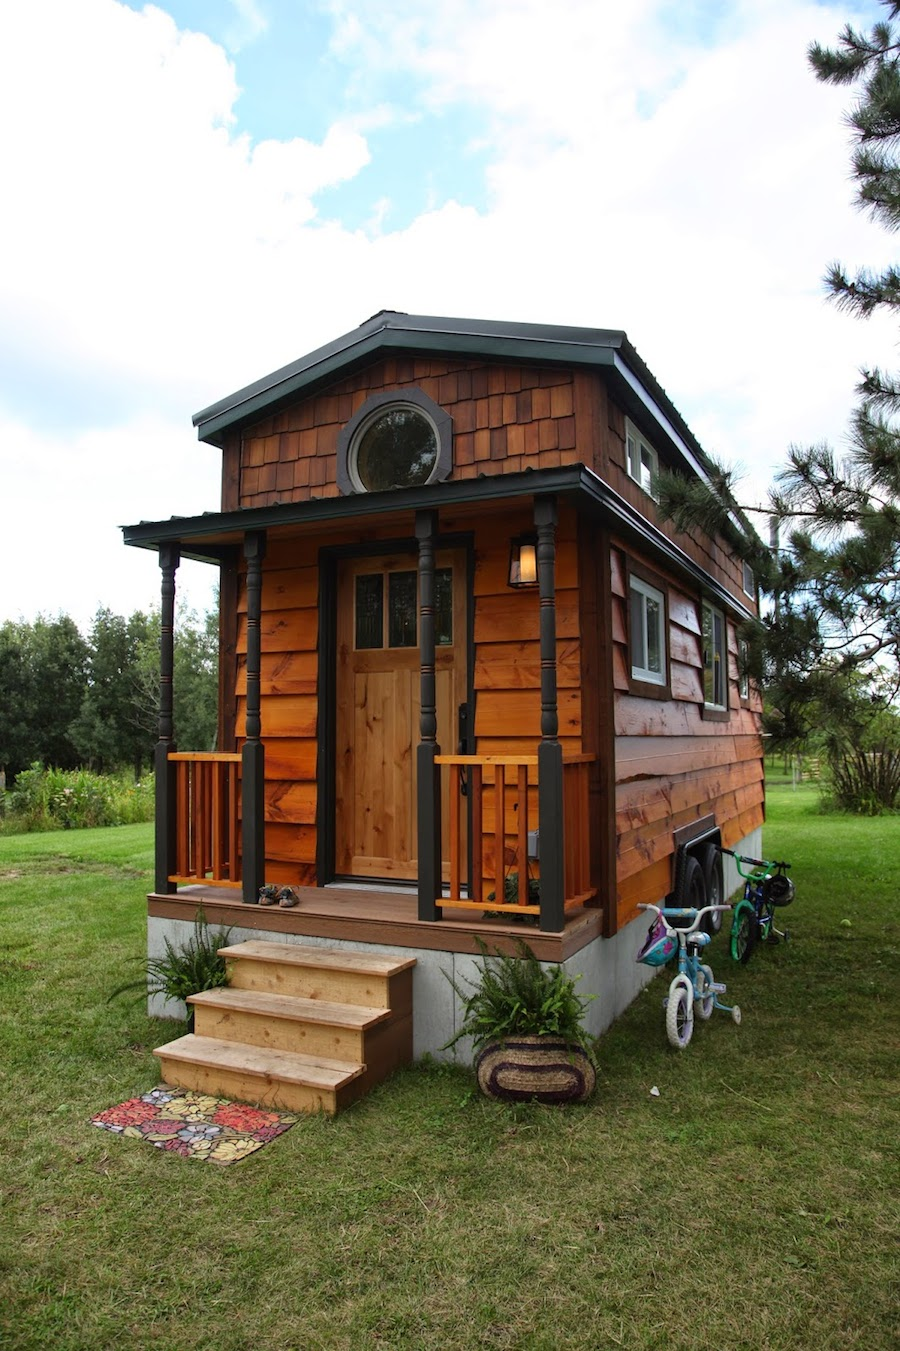 kasl-family-tiny-house-1